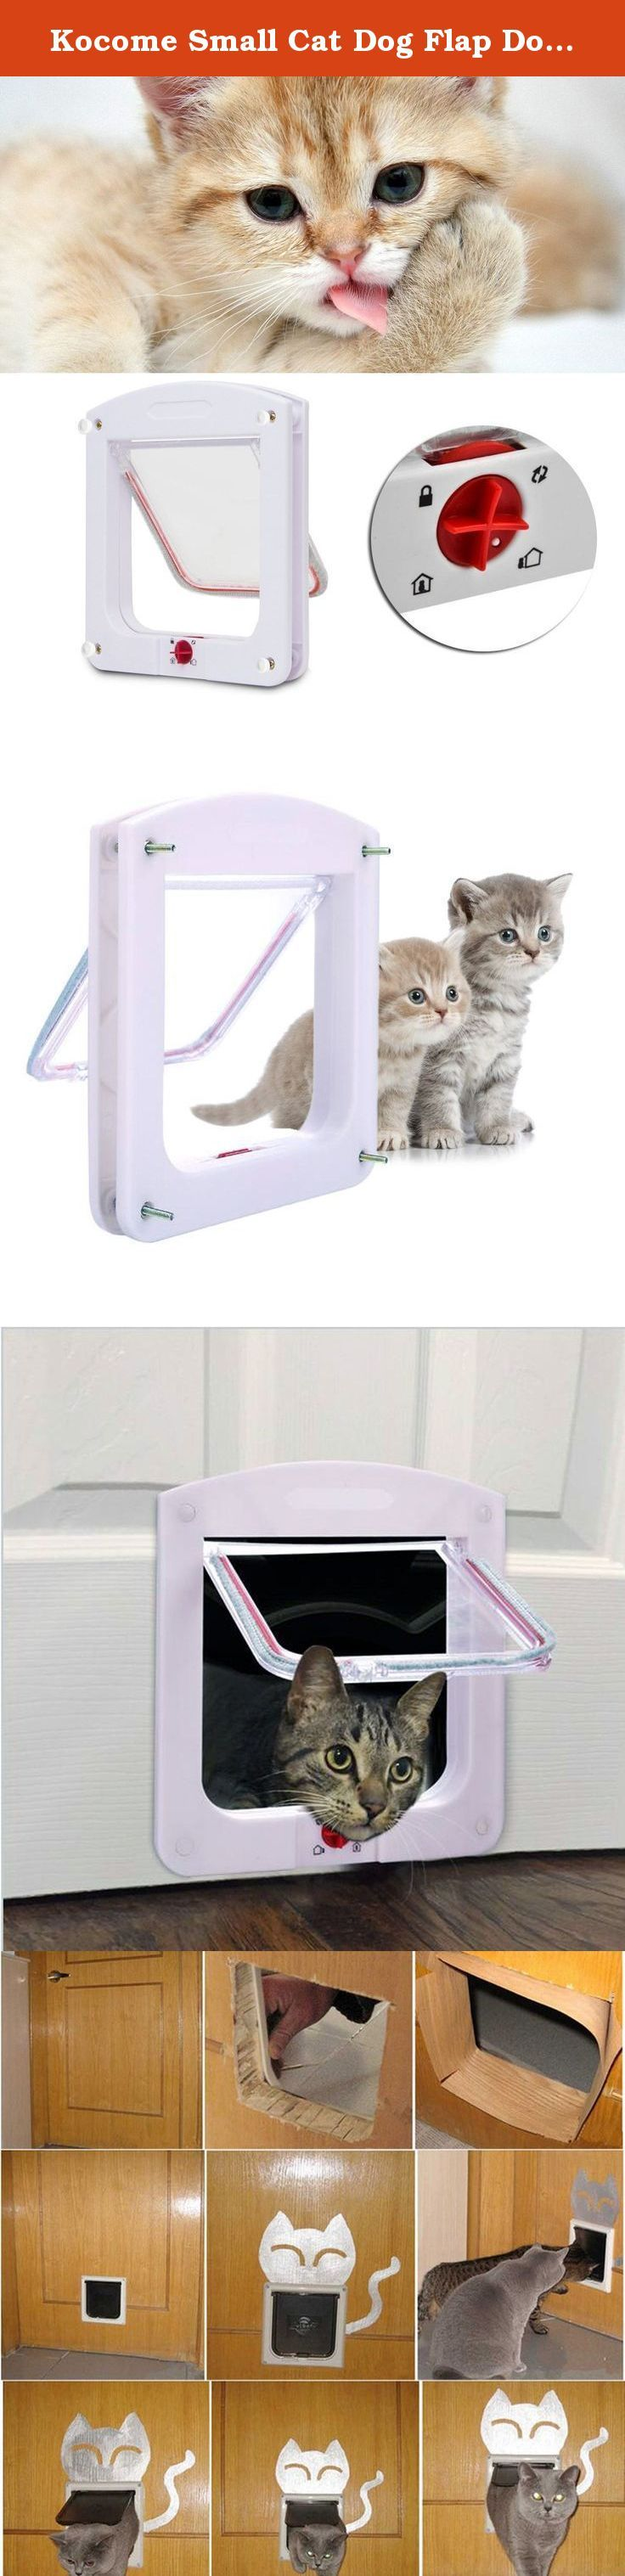 Kocome Small Cat Dog Flap Doors 4-Way Locking For Pets Entry Exit Controllable White. 100% brand new and high quality Material: Plastic Color: White (shown as the pictures) SIZE: (shown as the picture) Door frame:(H*W*T) 24.4*20.3*3cm / 9.61*7.99*1.18inch Door flap: (H*W) 15*15.7cm / 5.91*6.18inch 4-way locking pet door: Adjustable pet gate for entrance only, exit only, 2 ways, or locked position Perfect for cats & small dogs: Door fits pets up to 15 Pounds or smaller. Makes coming…